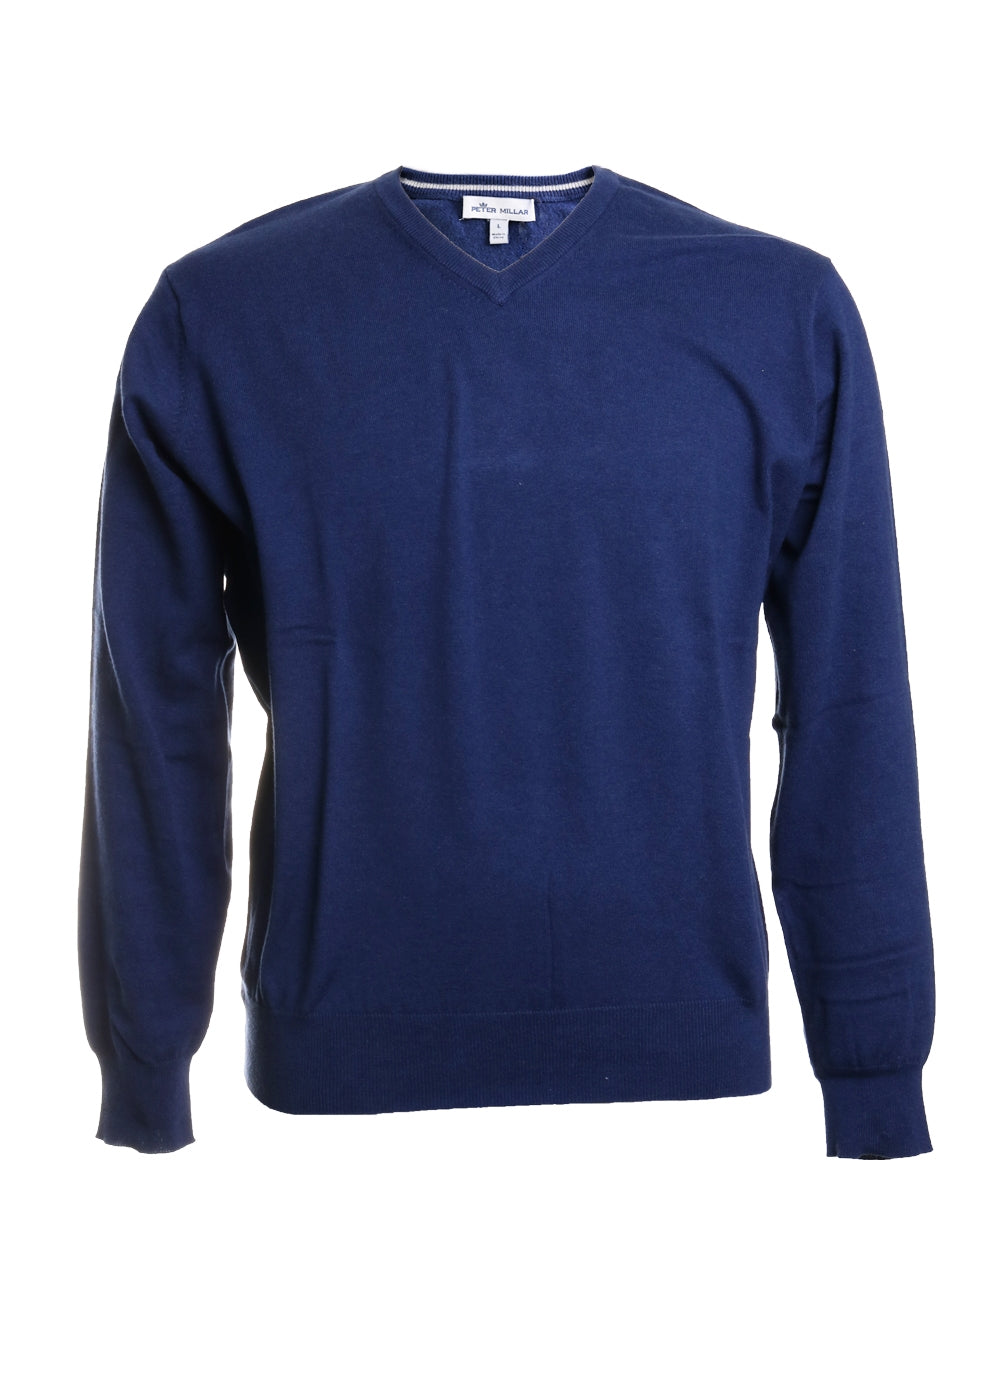 Peter Millar Men's Soft Cotton Long Sleeve V Neck Sweater in Navy